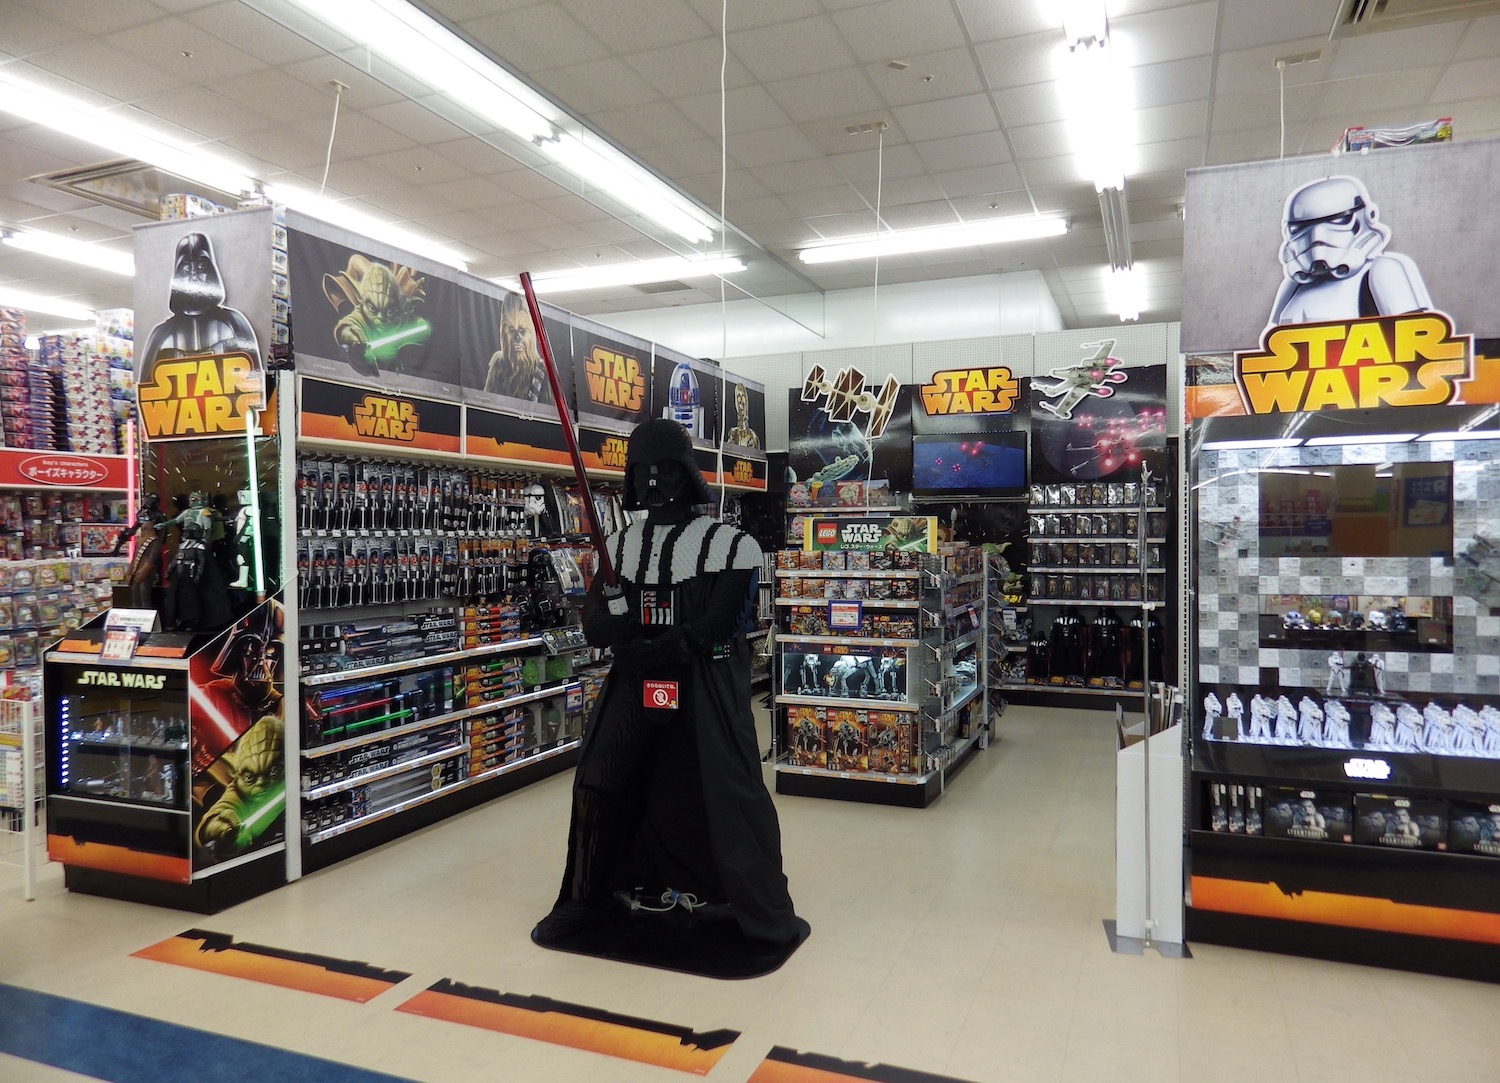 Destination Star Wars was a special section in the Odaiba store that led the charge in overstocking  Star Wars  goods. Two years later, many of the new  Force Awakens  goods would still be on the shelves at stores around Tokyo, with figures of obscure characters like Constable Zuvio posting clearance prices.